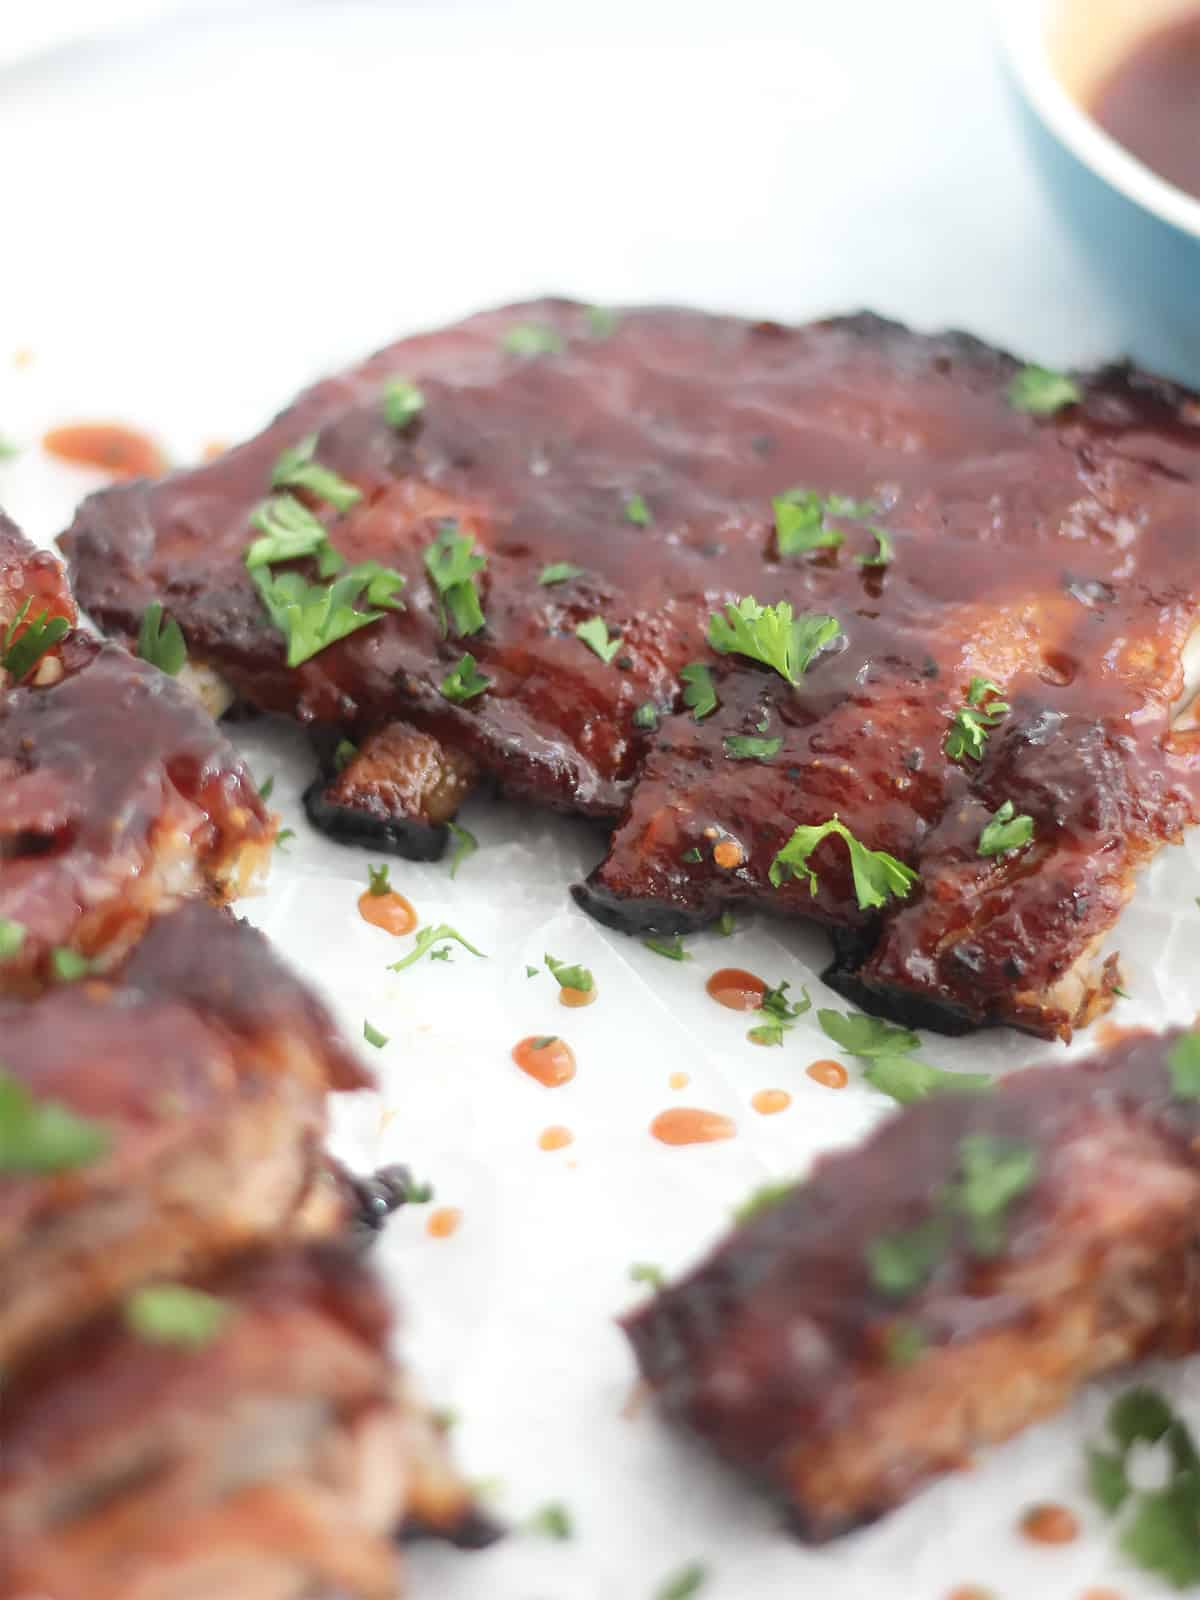 Oven baked ribs with glaze ready to eat.